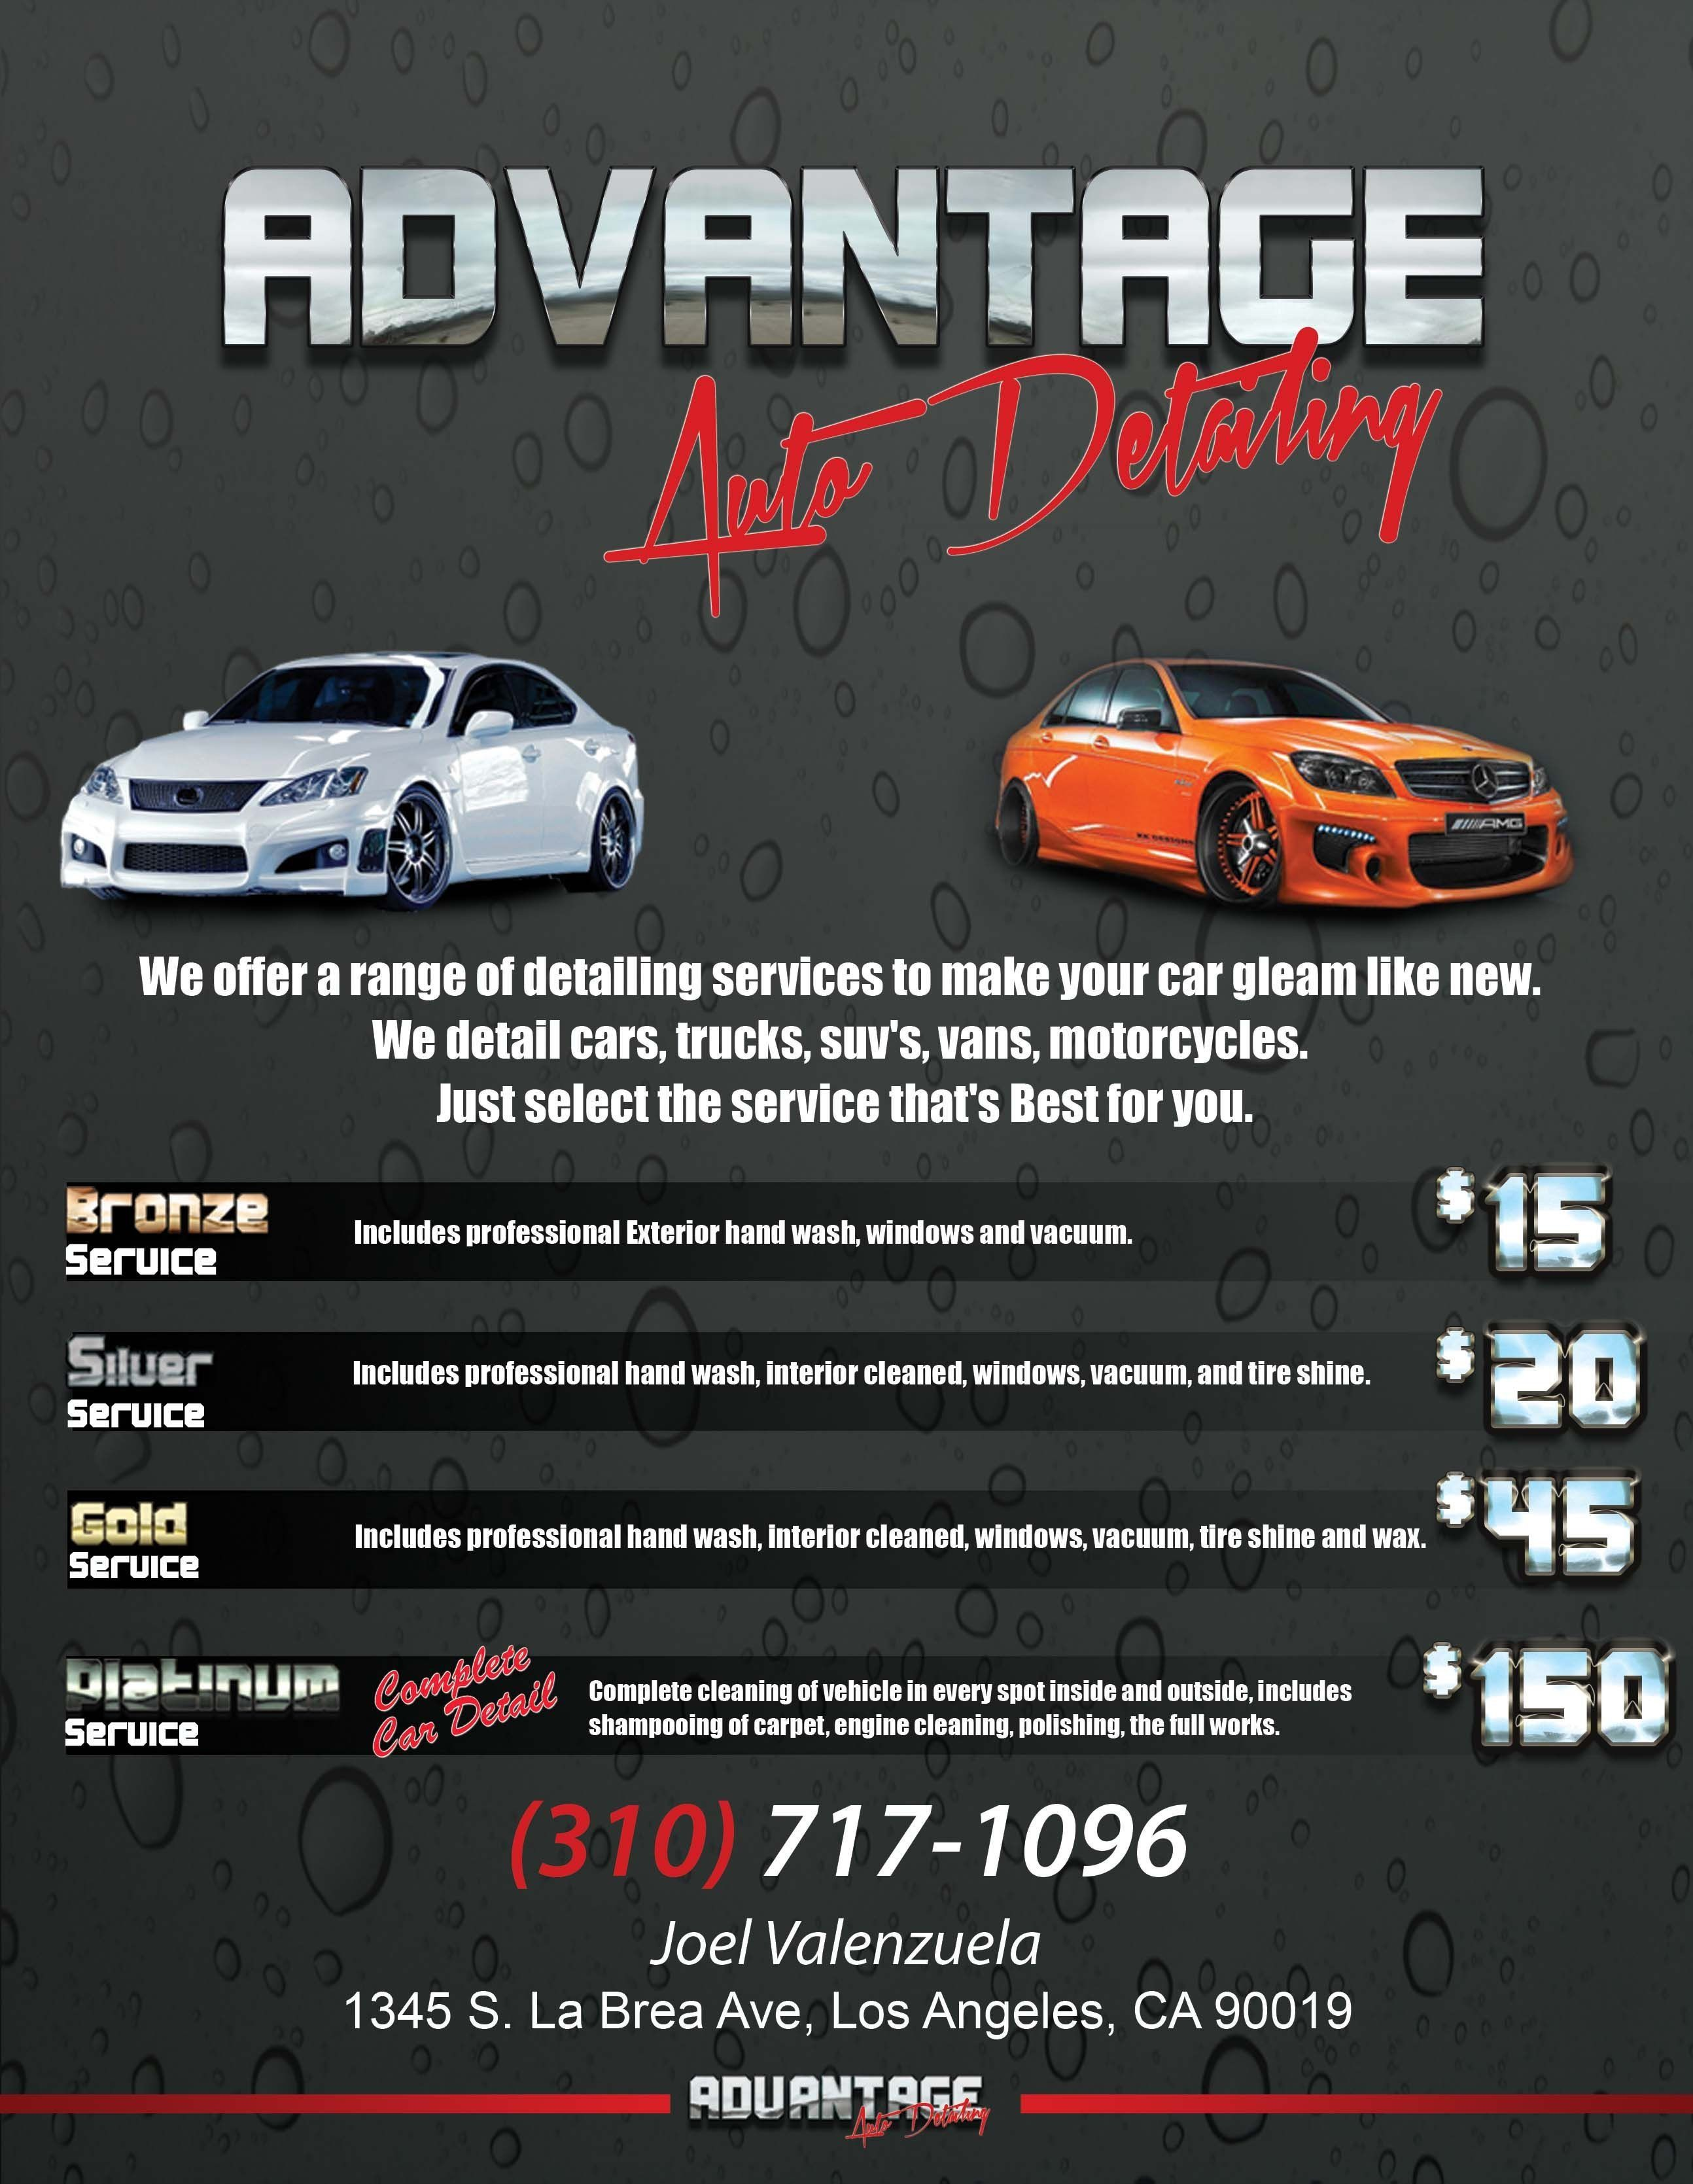 Auto Detailing Flyer Template Image Result For Auto Detailing Flyers Cars Flyer Template Car Detailing Car Wash